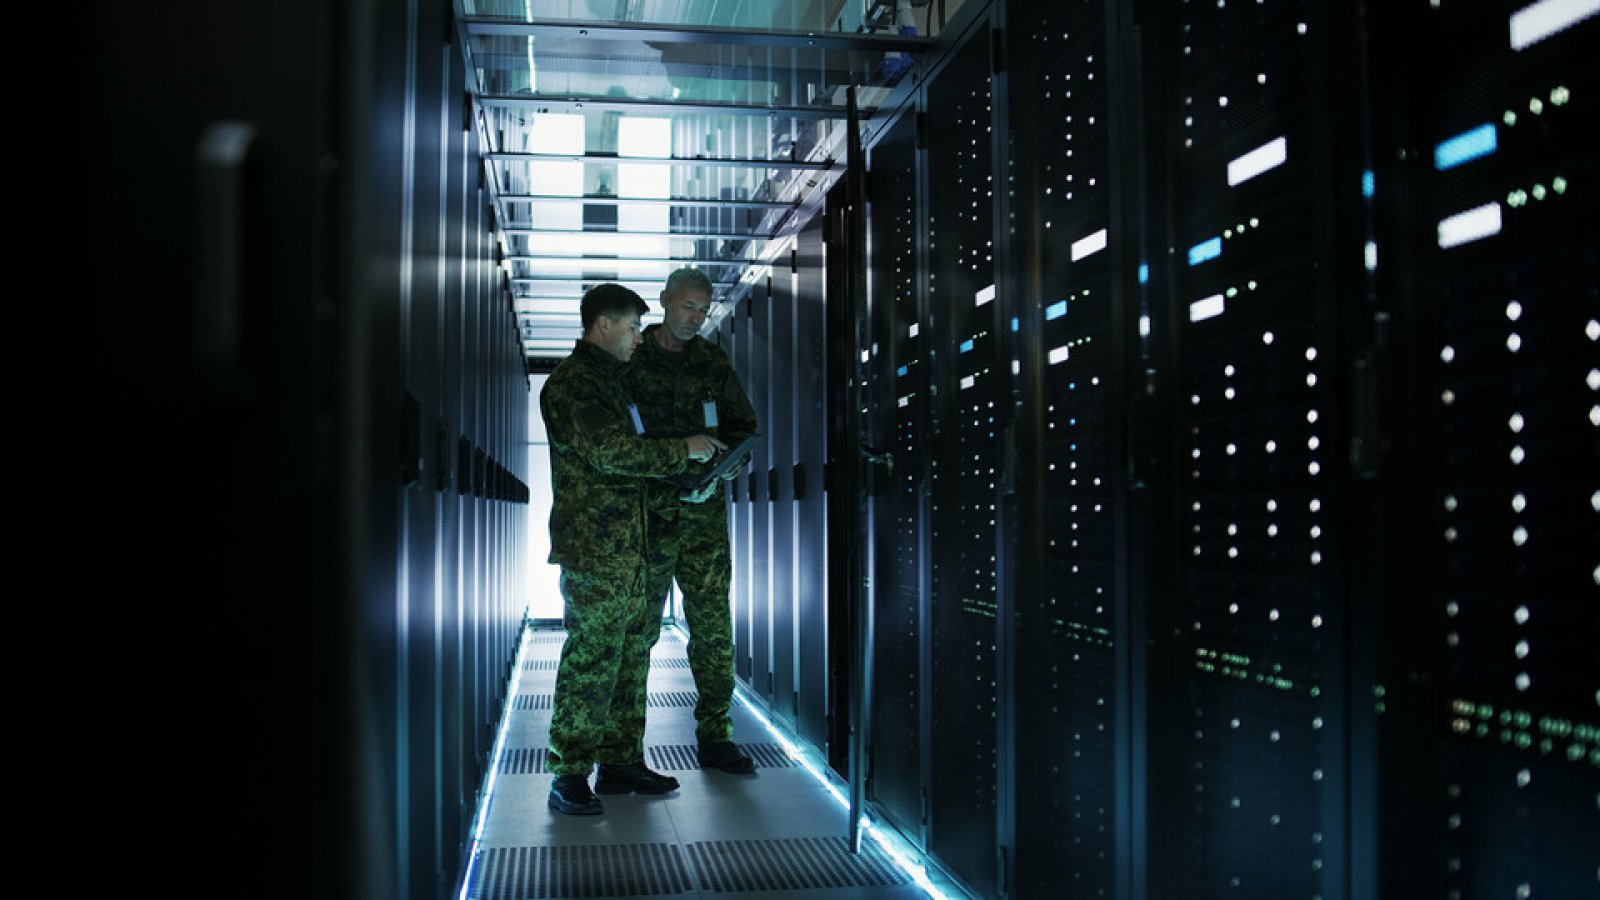 Military members work in an open server rack. The university has earned a $25 million contract with the National Nuclear Security Administration. The work will support strategic deterrence and nuclear threat reduction efforts. (Shutterstock)